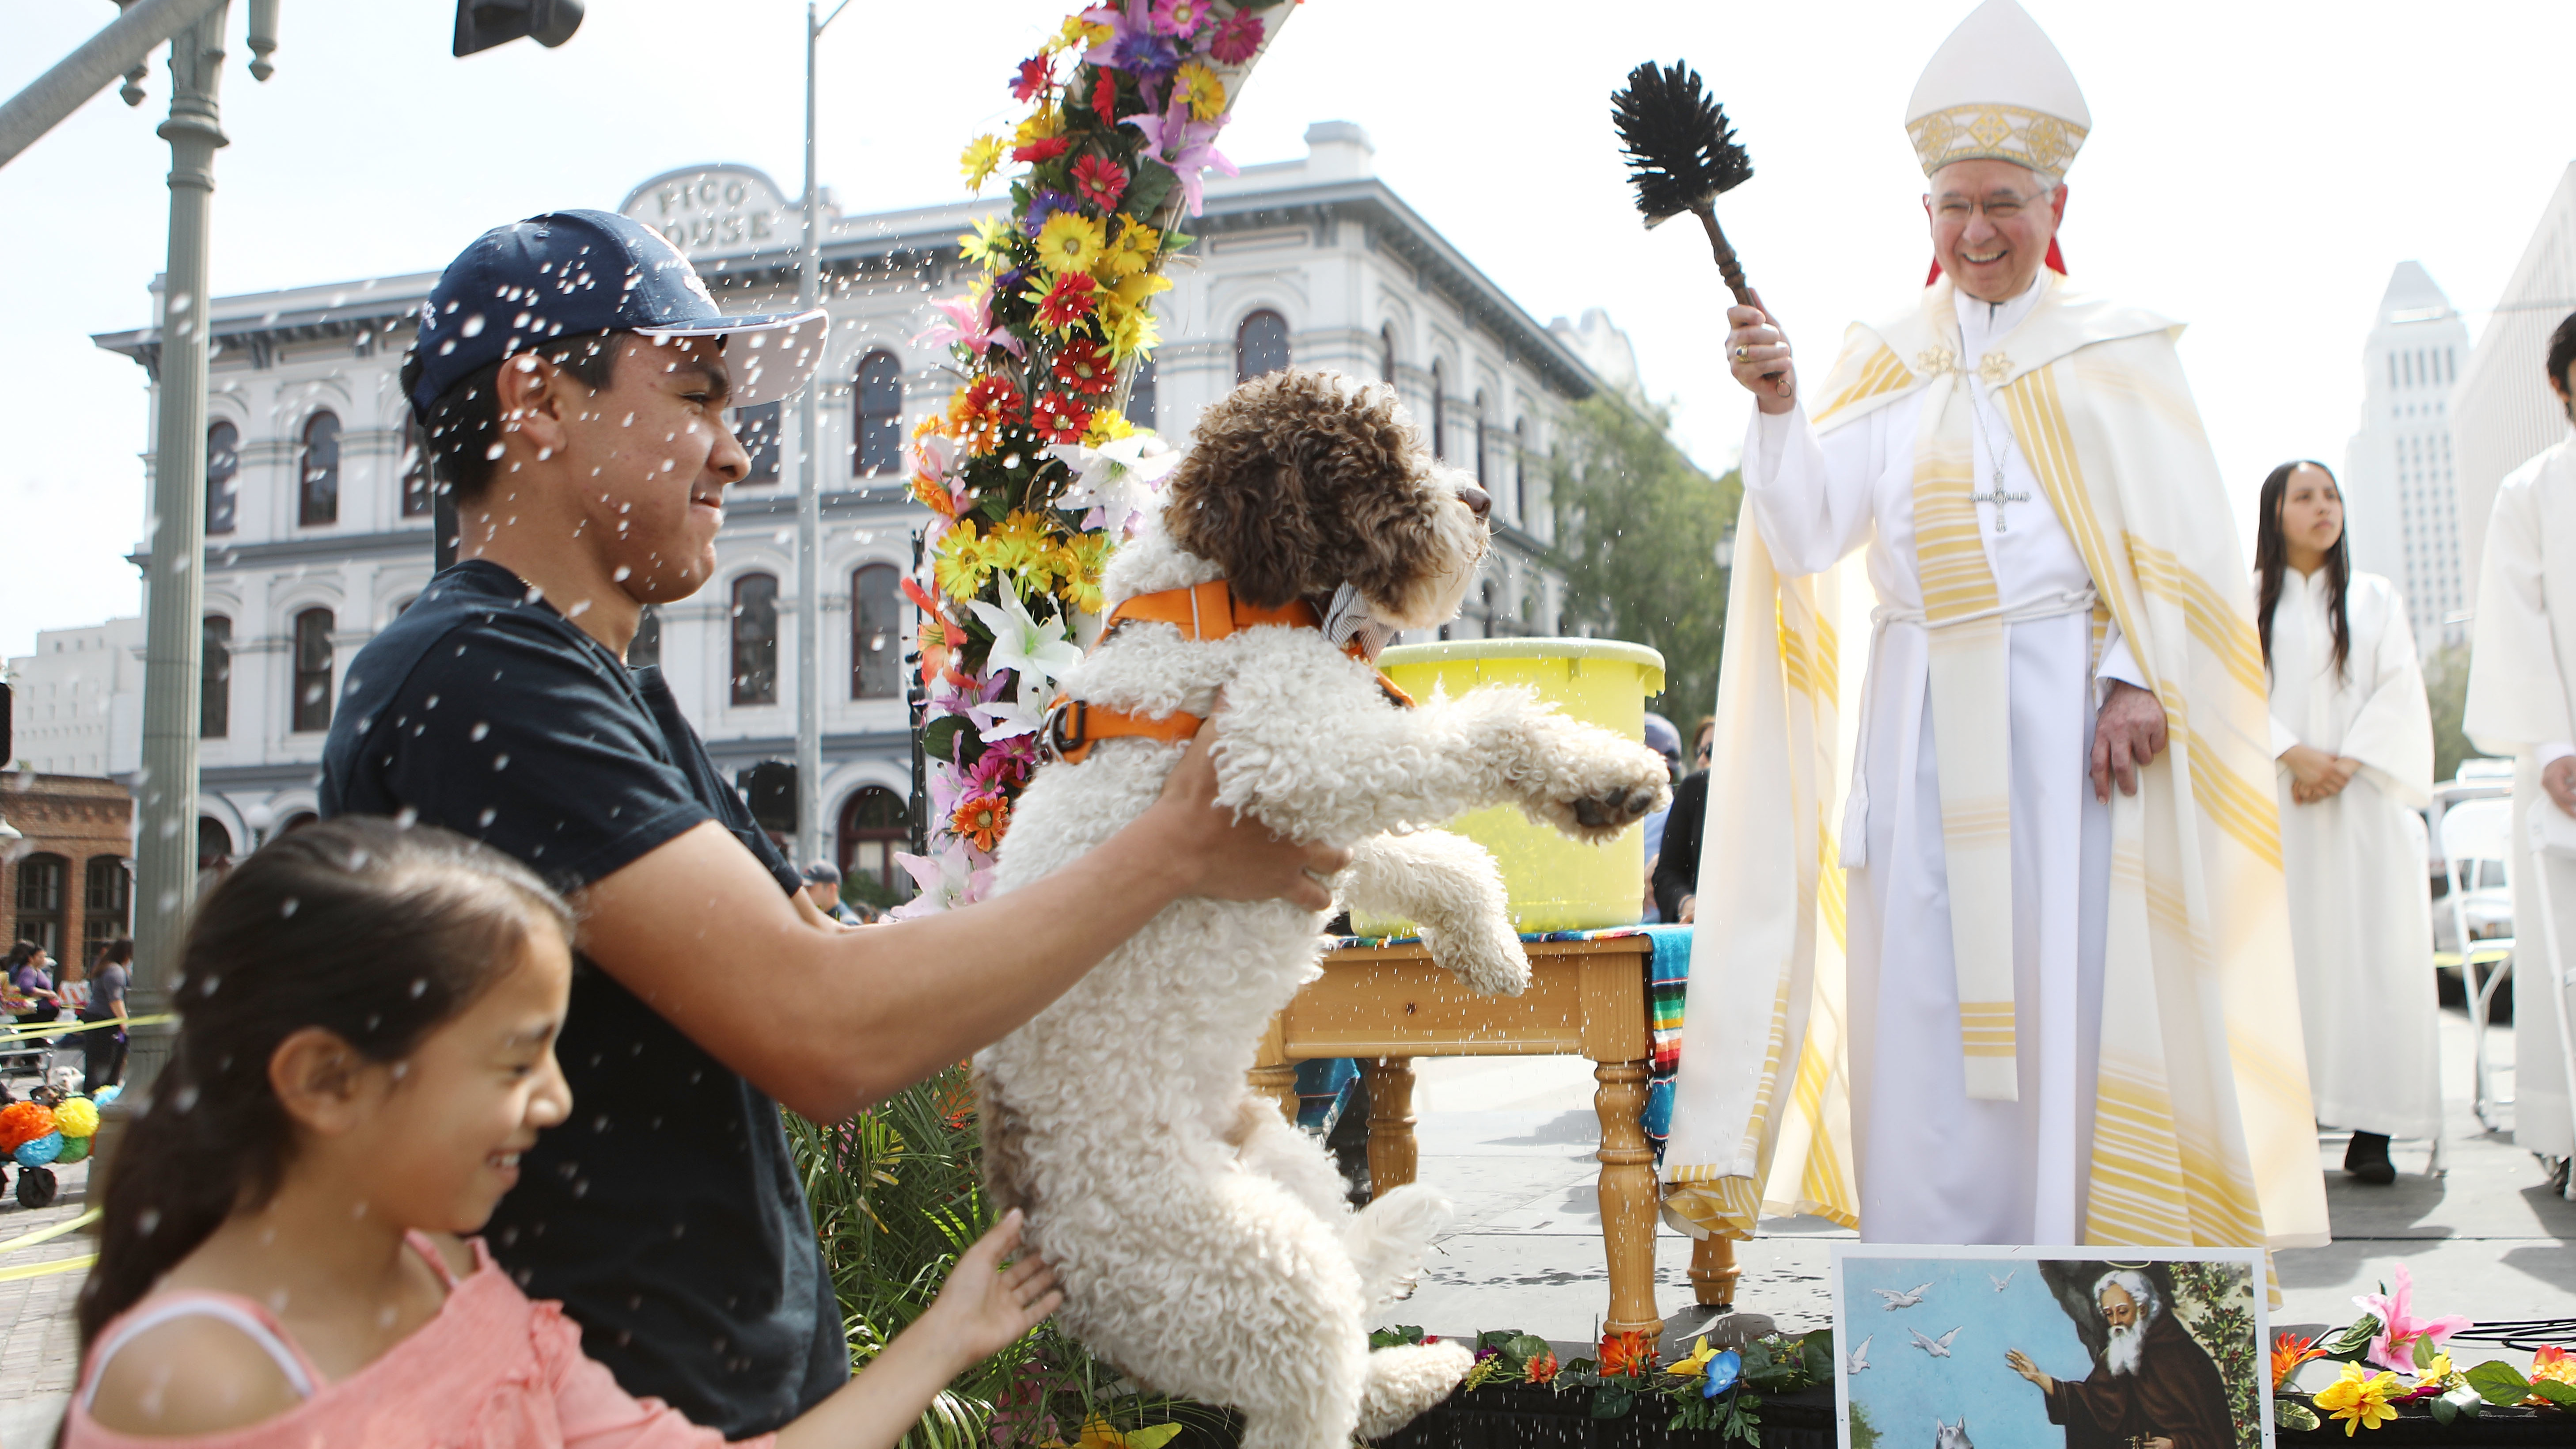 Archbishop José Gomez, 67, was elected to lead the U.S. Conference of Catholic Bishops Tuesday. He's seen here blessing a dog with holy water during the annual Blessing of the Animals ceremony in Los Angeles last year.